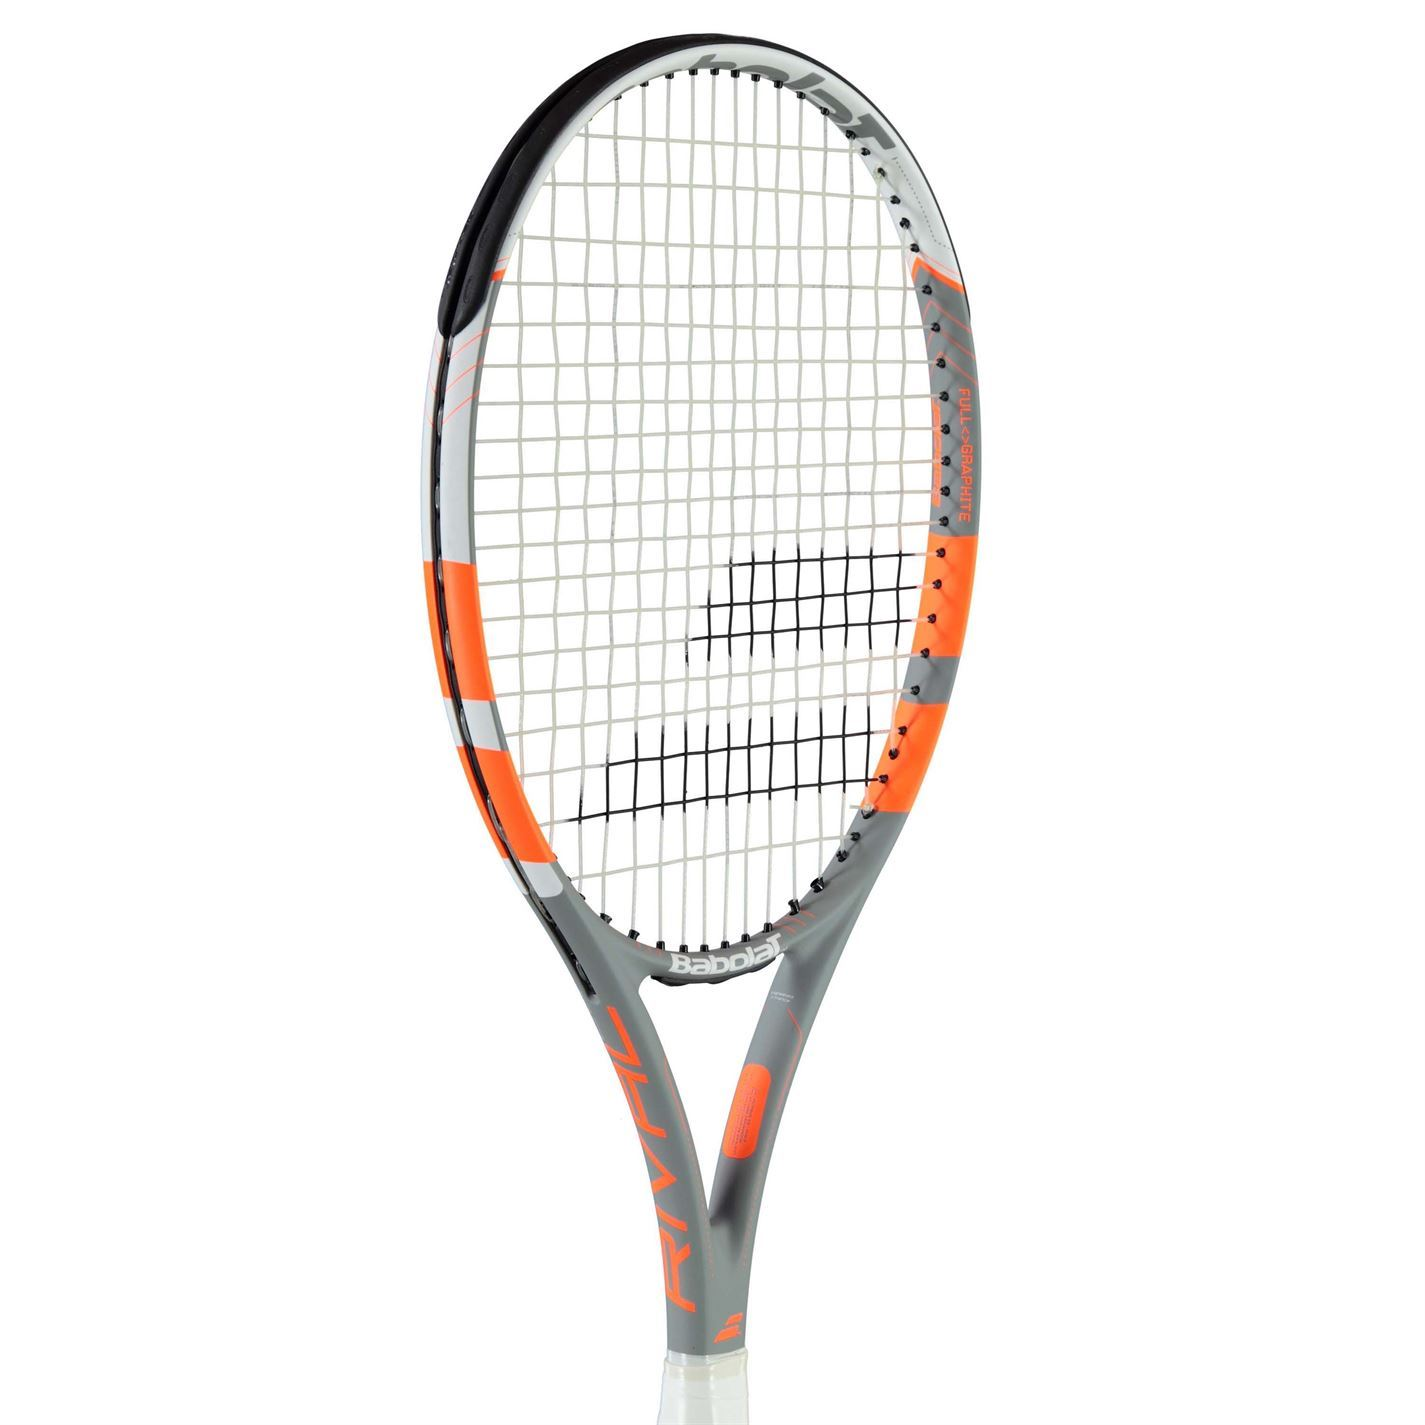 Babolat Rival 100 Tennis Racket Graphite Play Game Court Sports Accessories